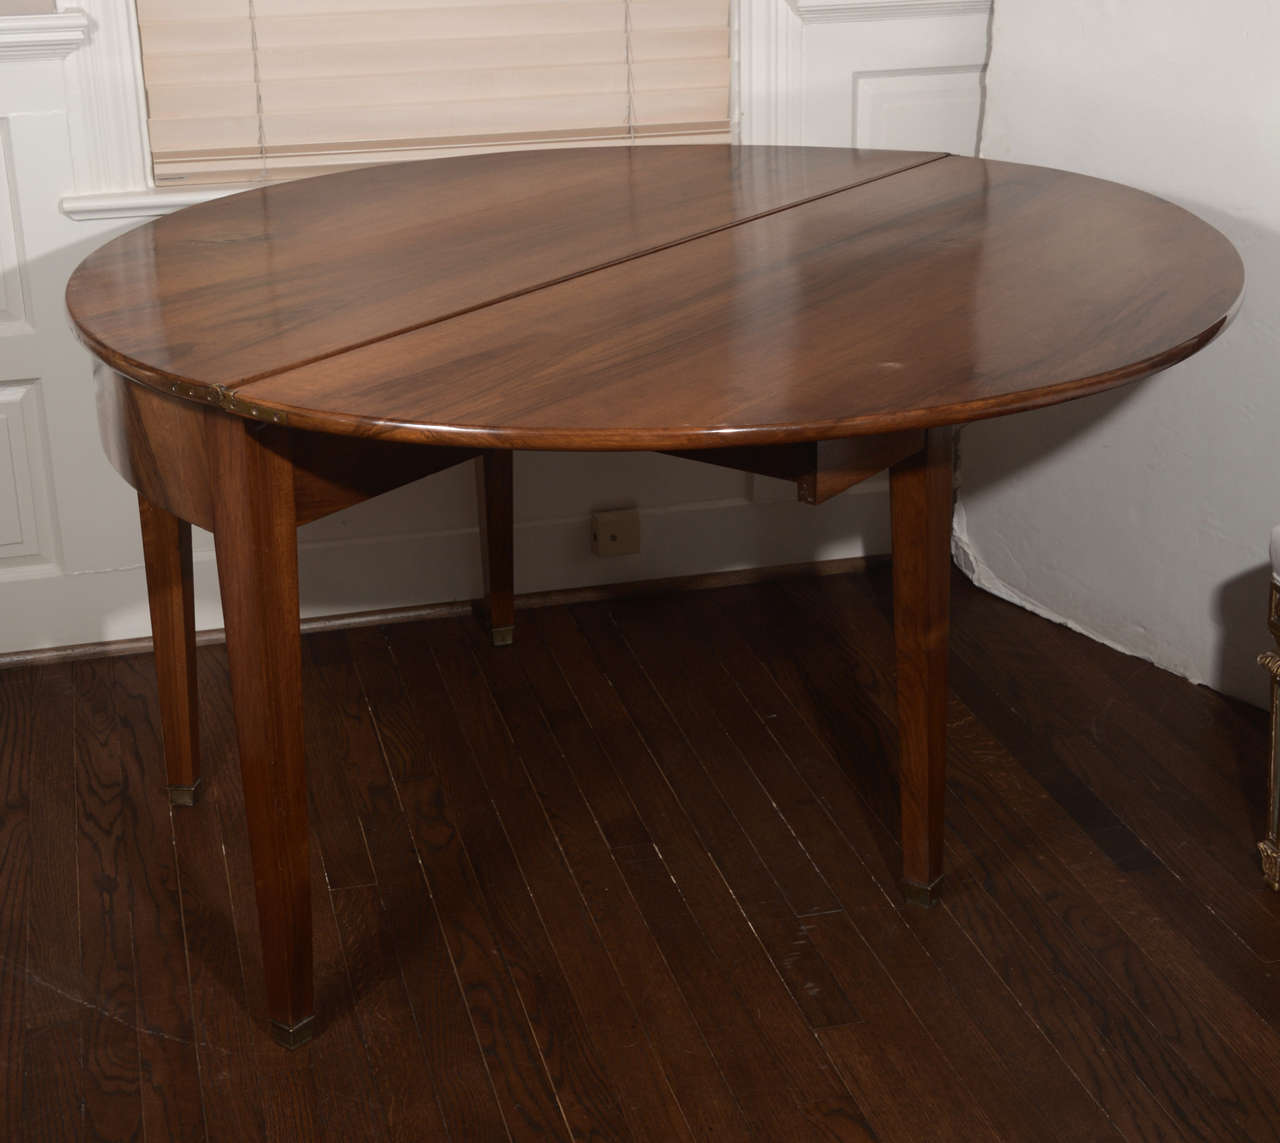 French directoire style demi lune table at 1stdibs - Table demi lune murale ...